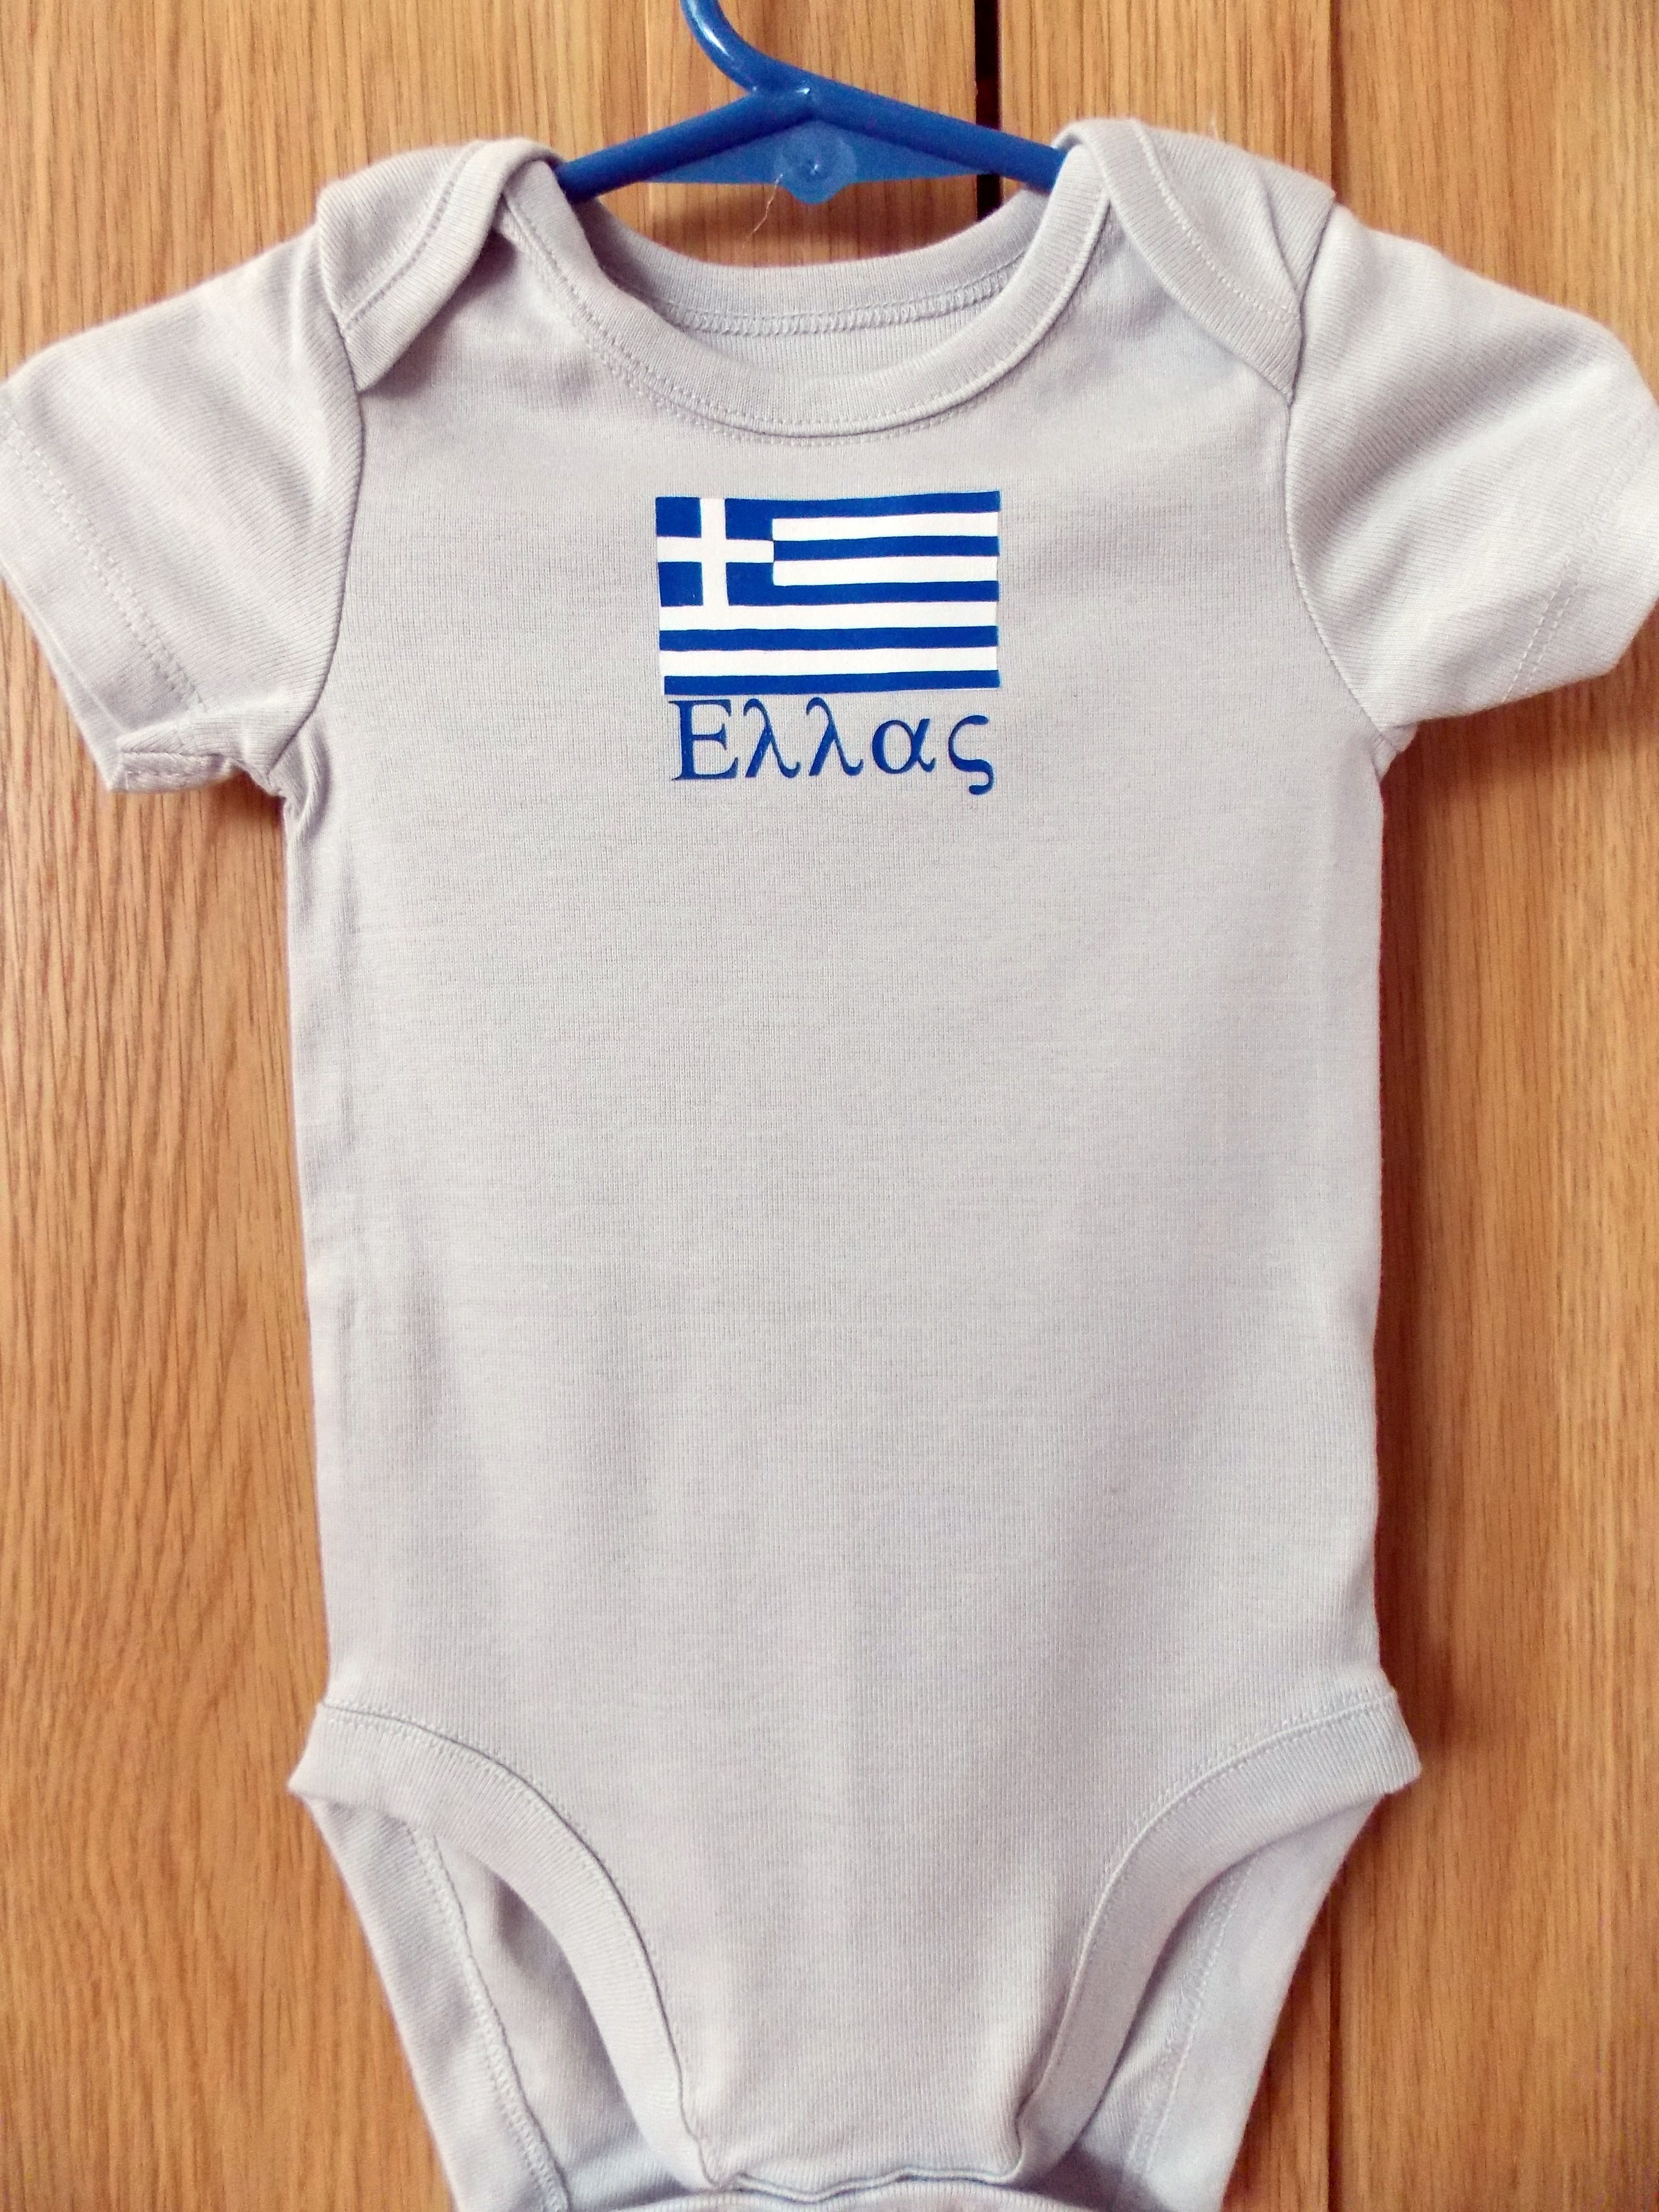 Greek Flag on a Onesie for our Grandson